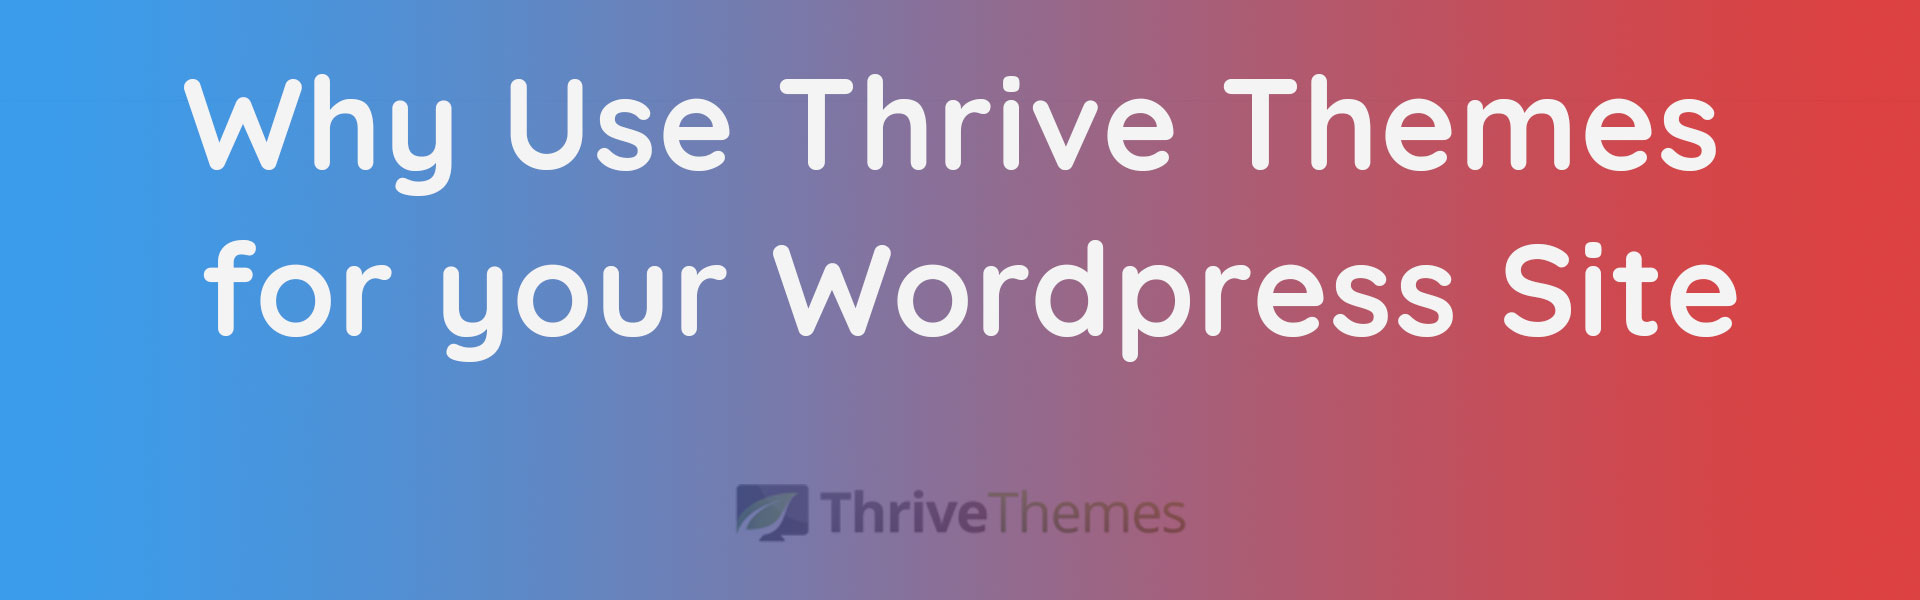 Thrive Themes Coupon Voucher Code June 2020